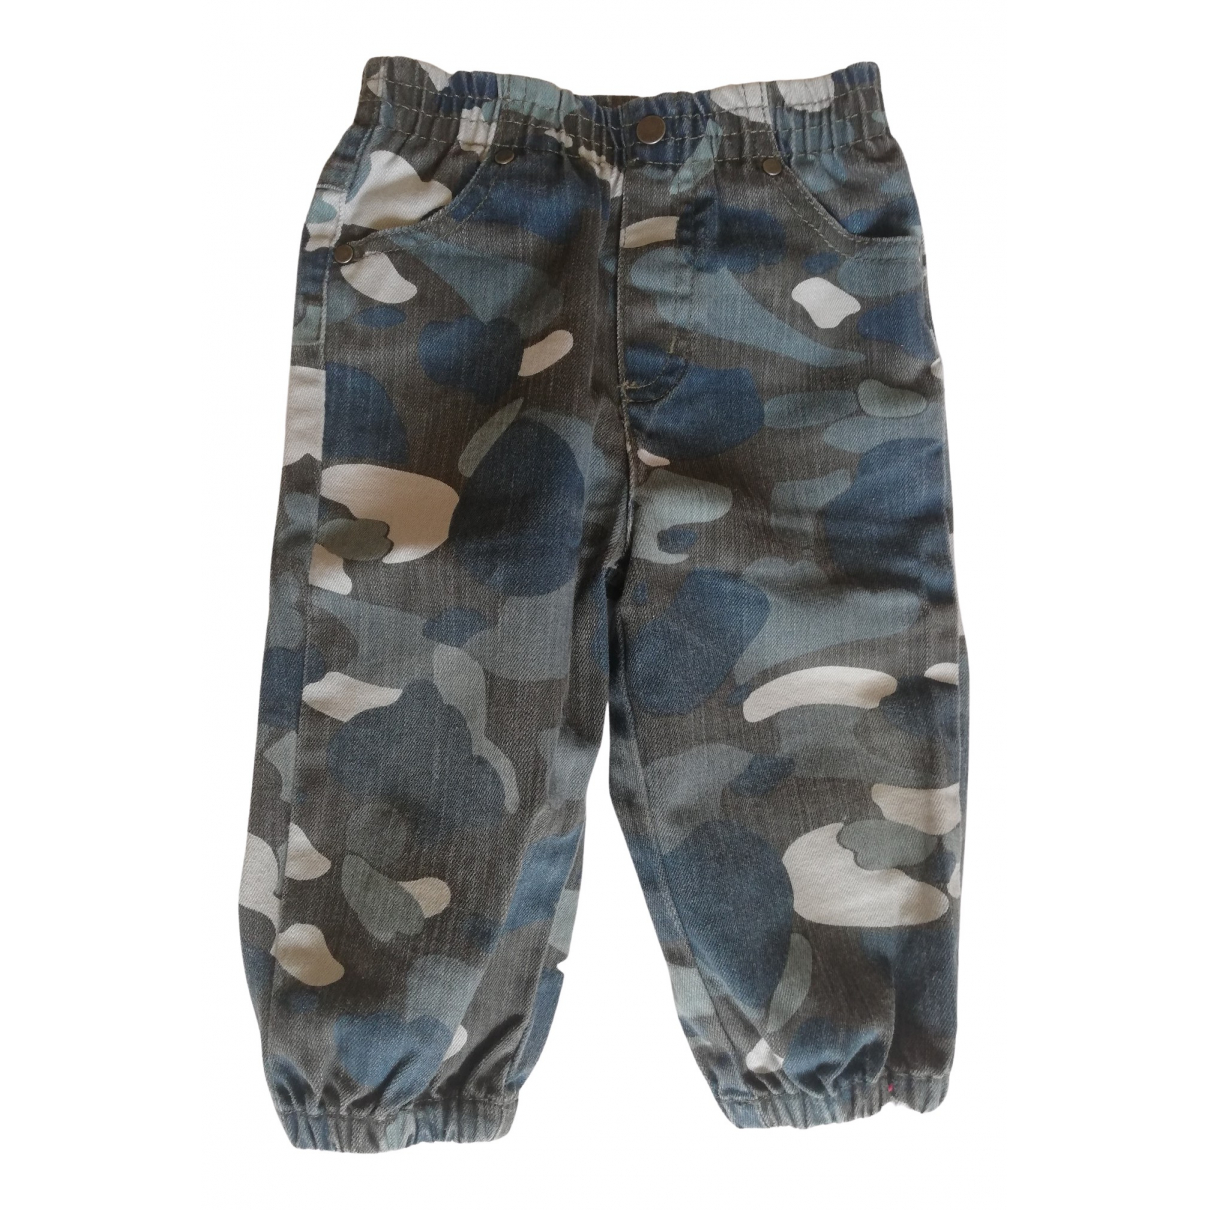 Stella Mccartney - Pantalon   pour enfant en denim - multicolore